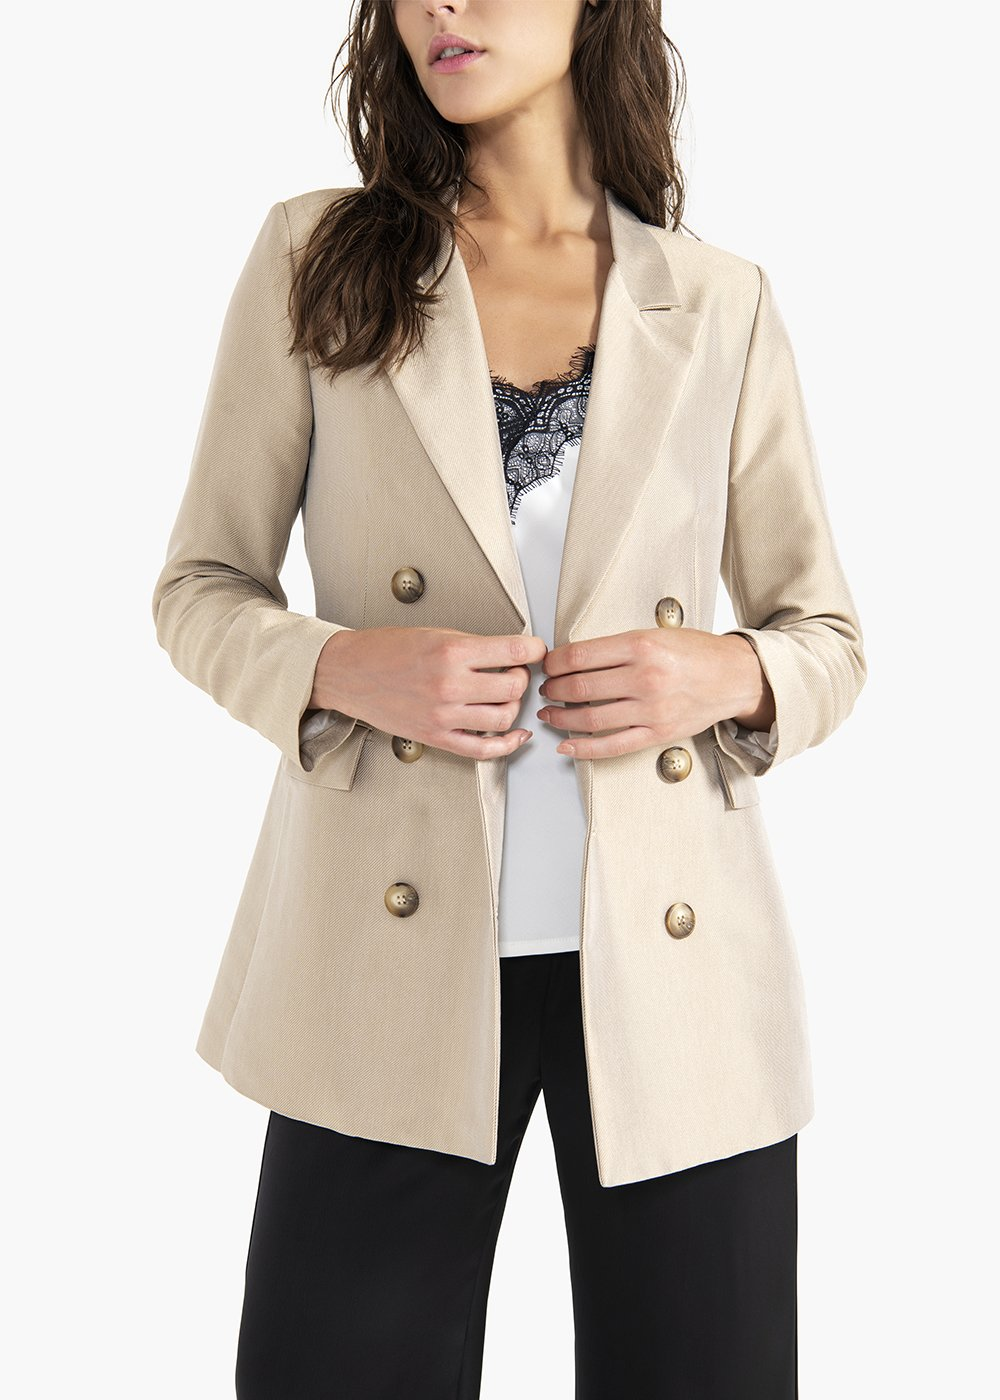 Golia double-breasted jacket in viscose fabric - Beige_White - Woman